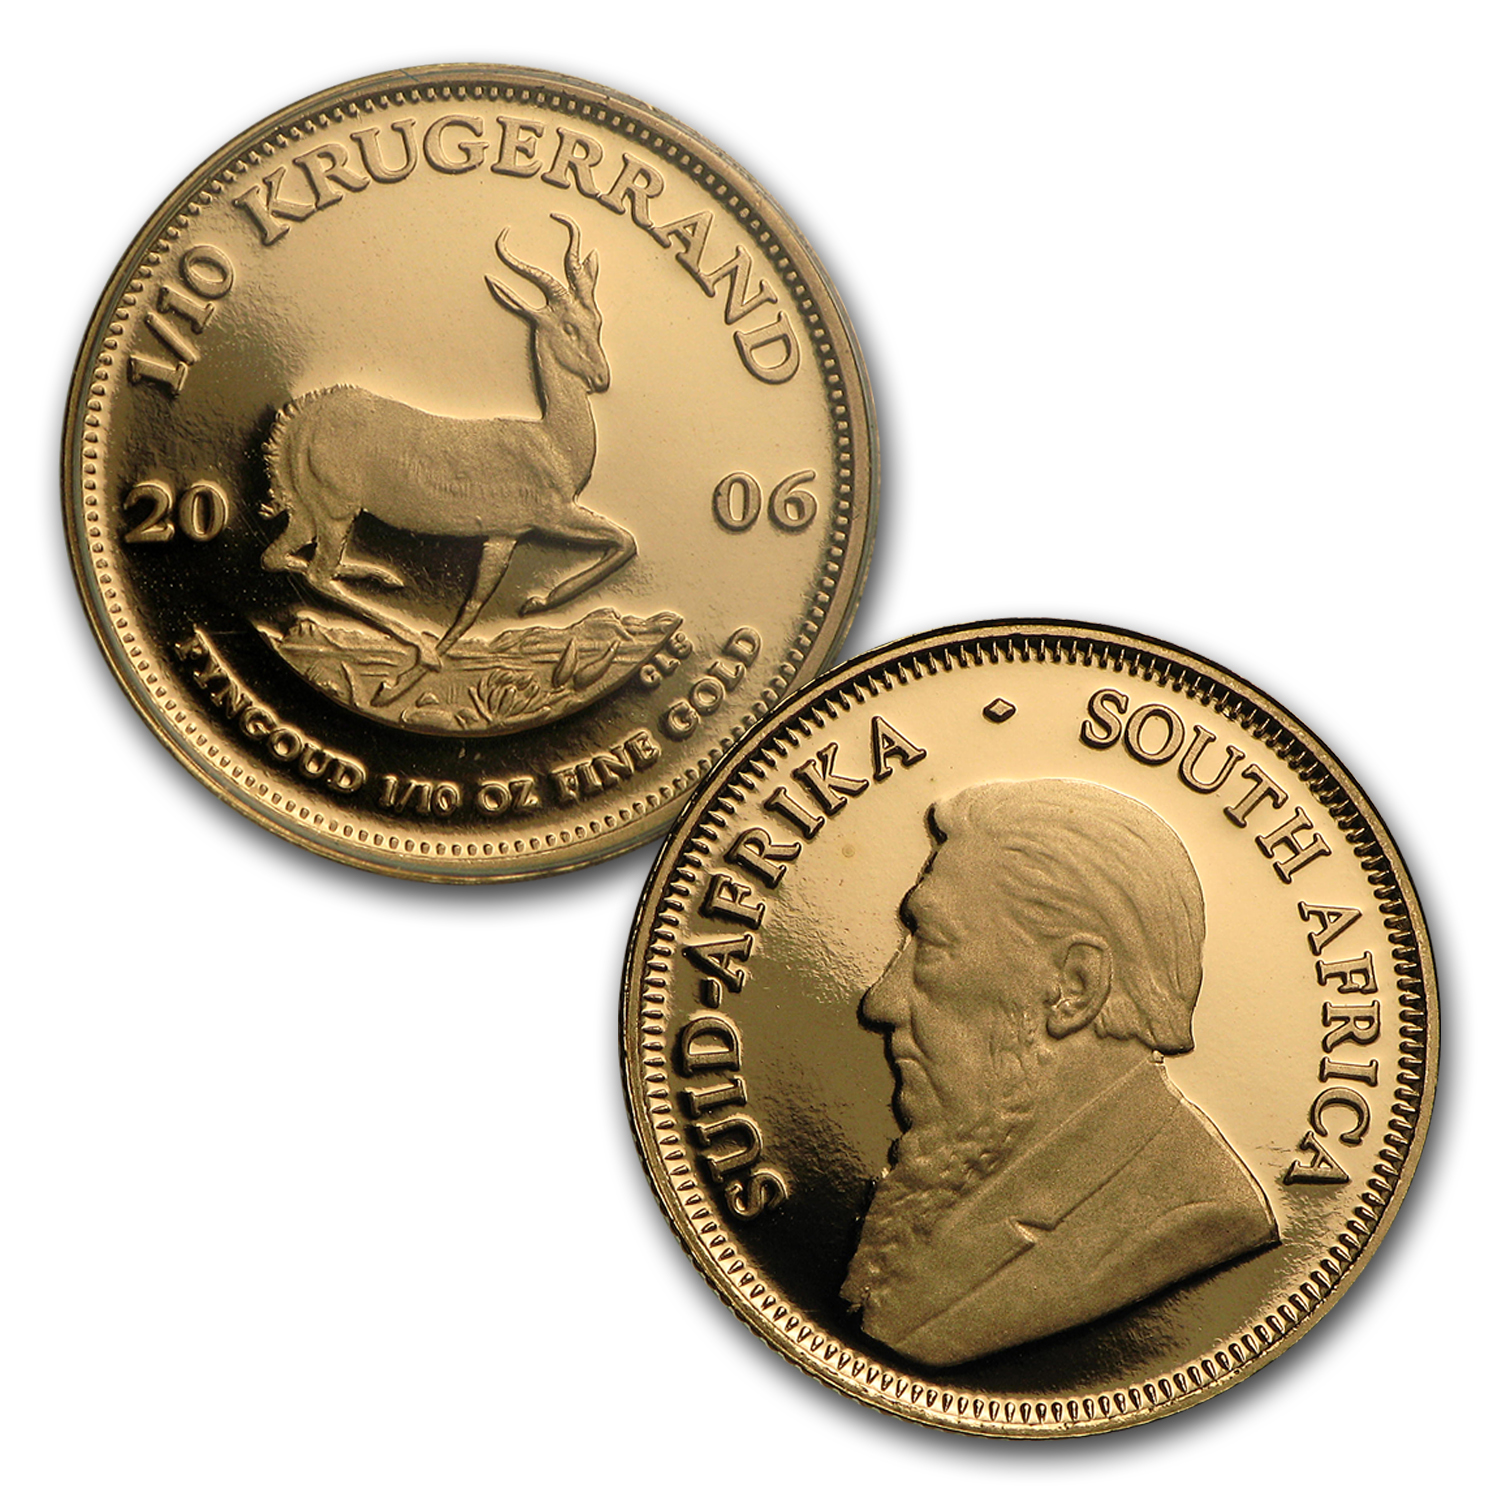 2006 South Africa 4-Coin Gold Krugerrand Proof Set